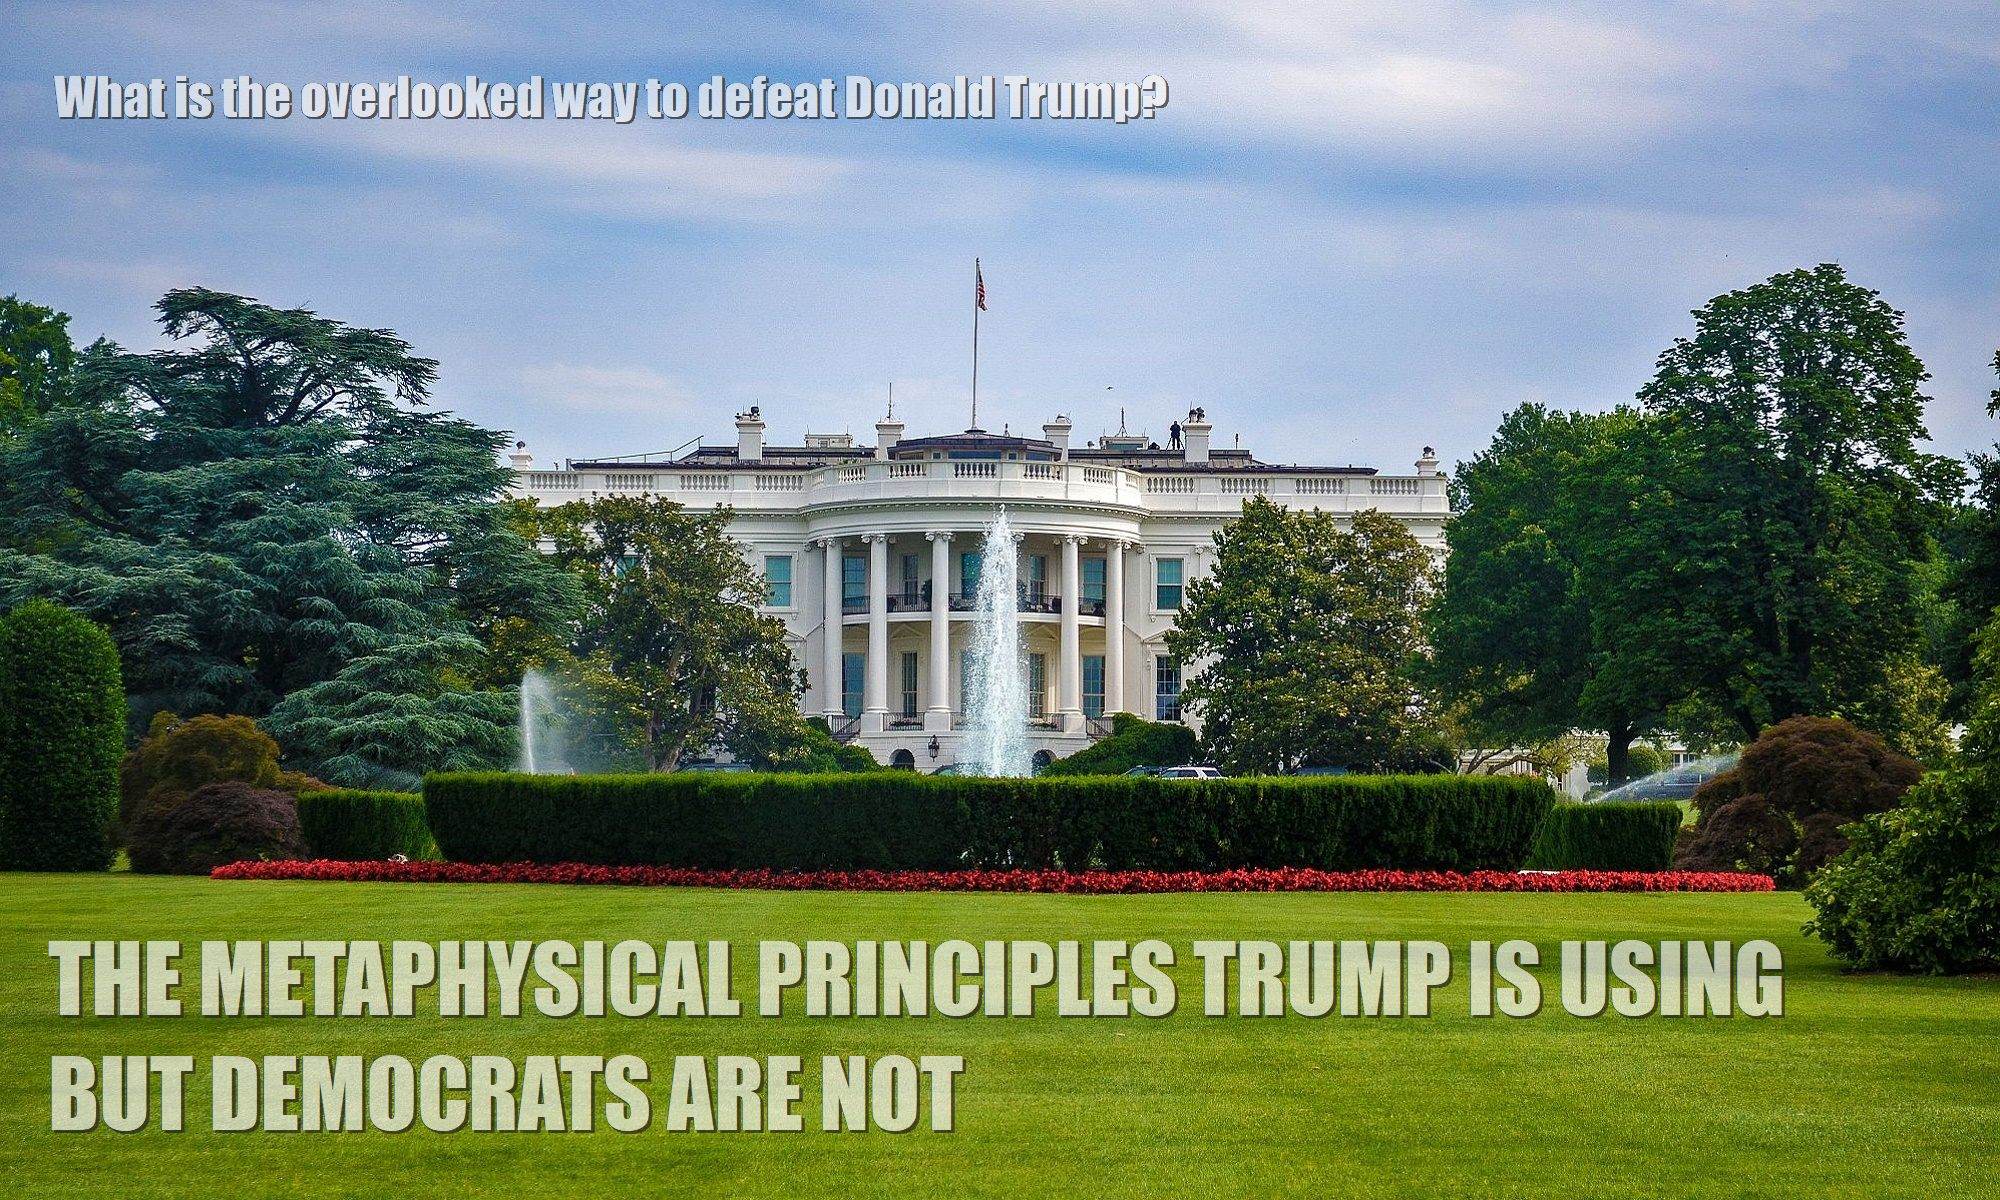 White-House-the-overlooked-way-to-defeat-donald-trump-the-metaphysical-principles-trump-is-using